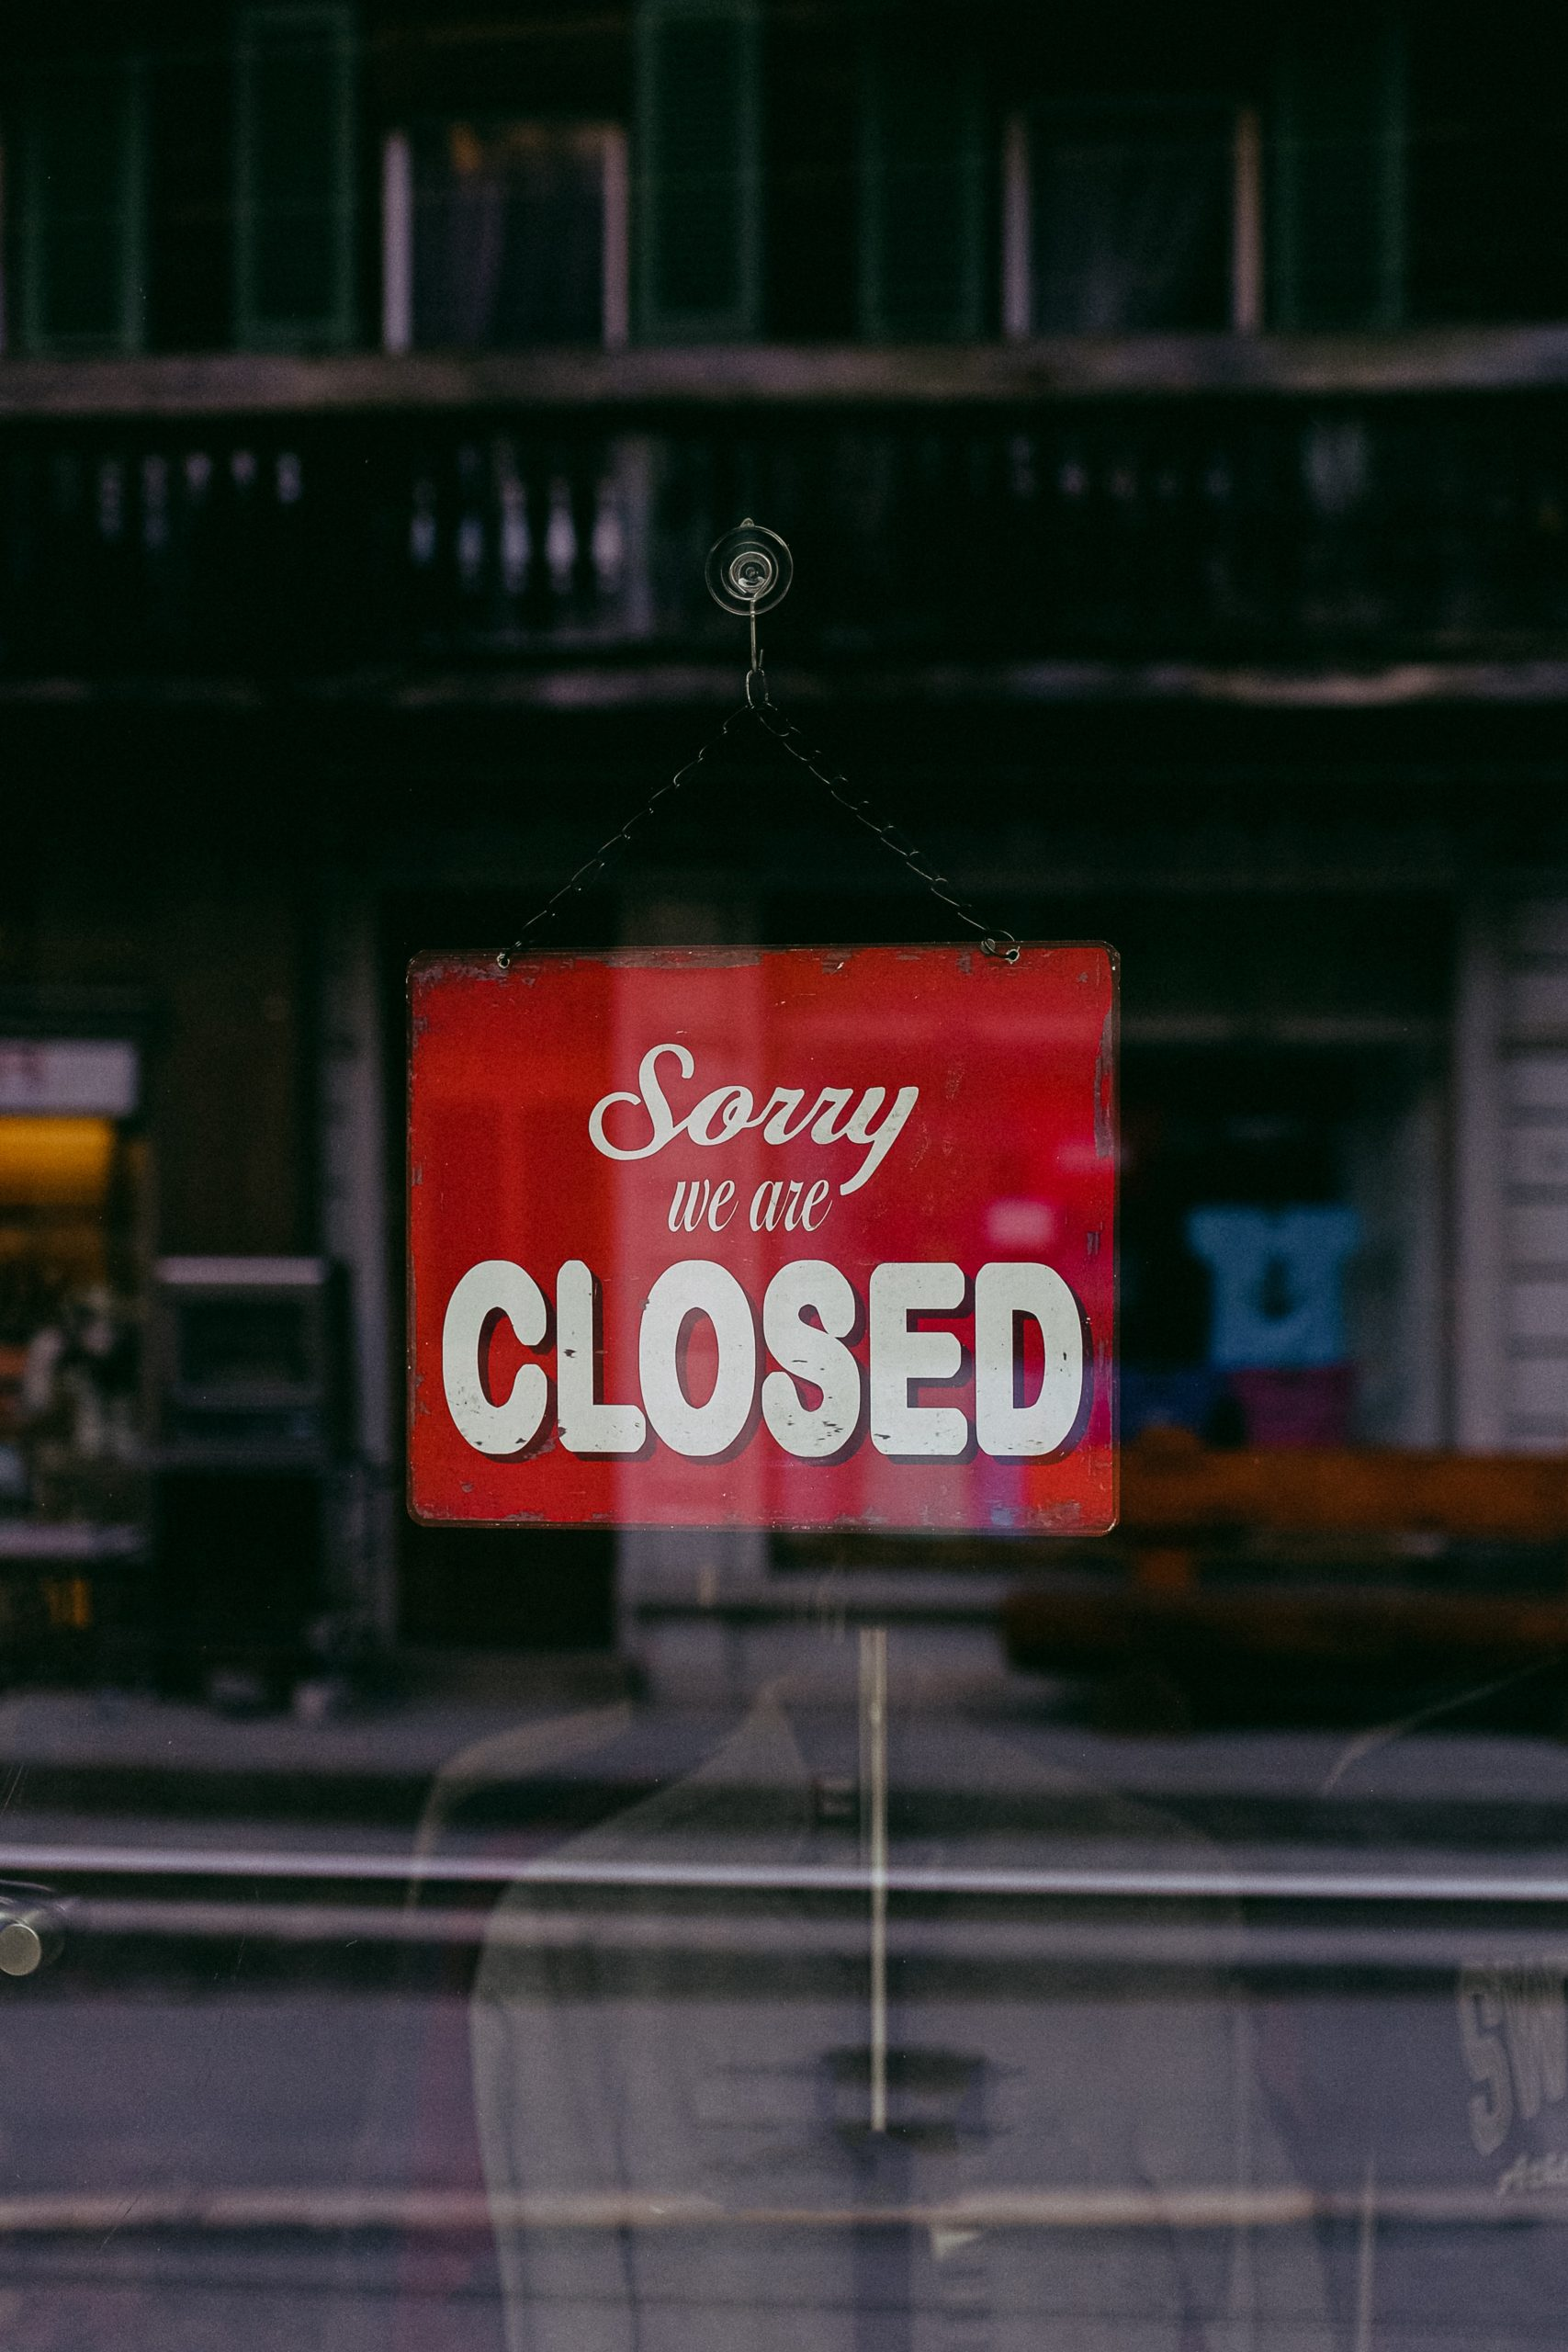 Lockdown 2 - business with 'Sorry we're closed' sign up